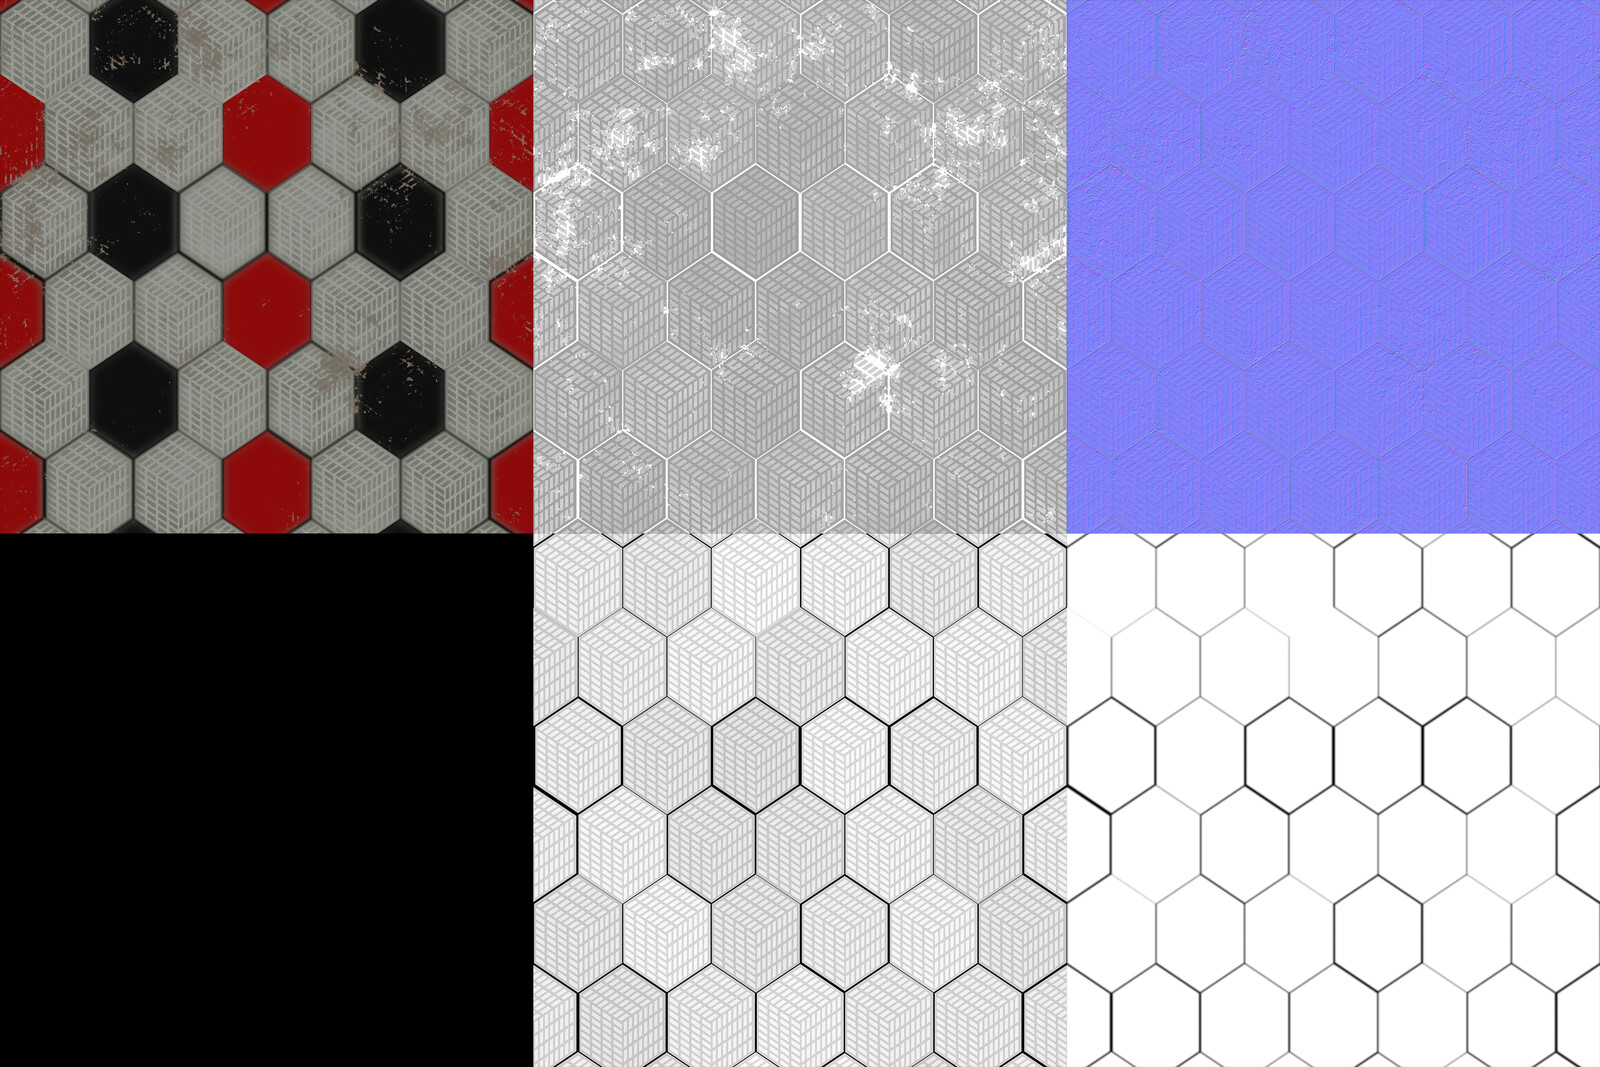 Albedo, Roughness, Normal, Metalness, Height, and Ambient Occlusion maps